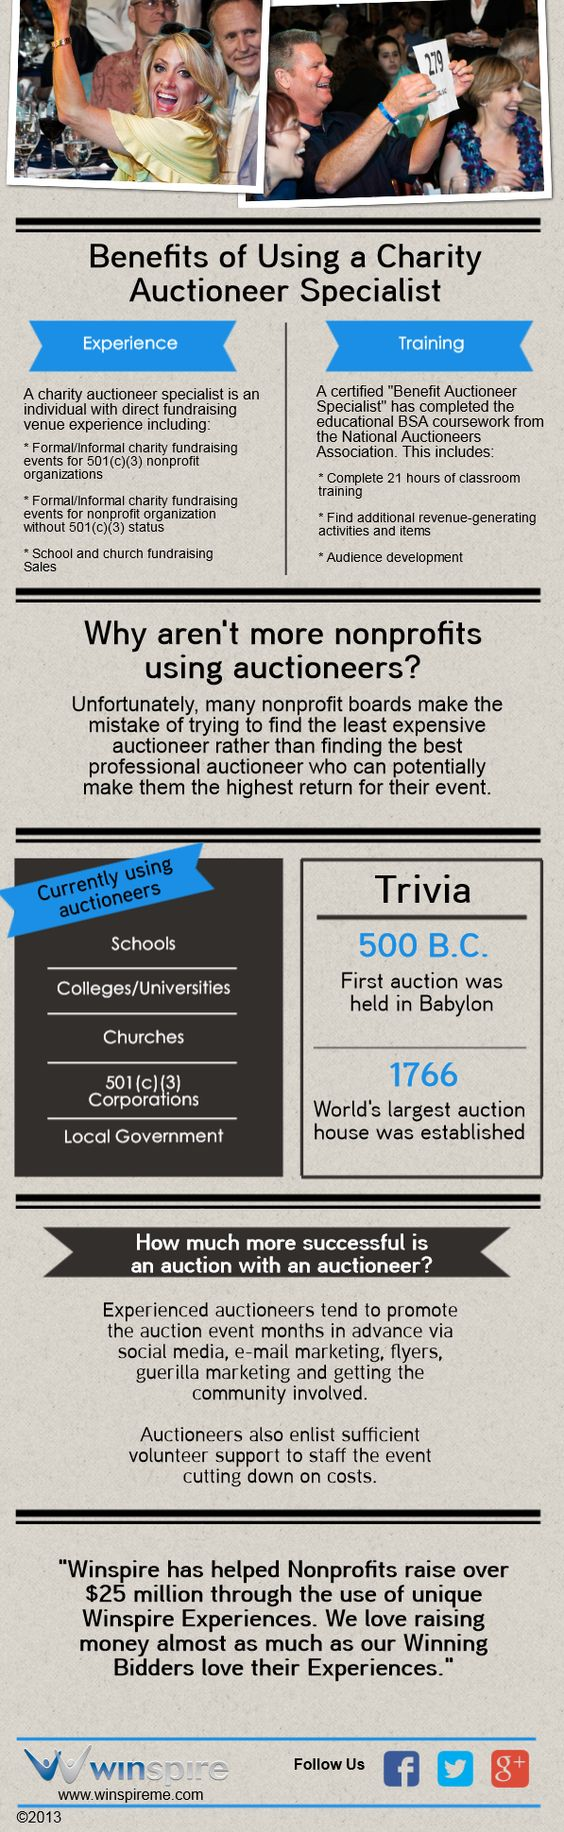 Benefits of Using an Auctioneer Infographic